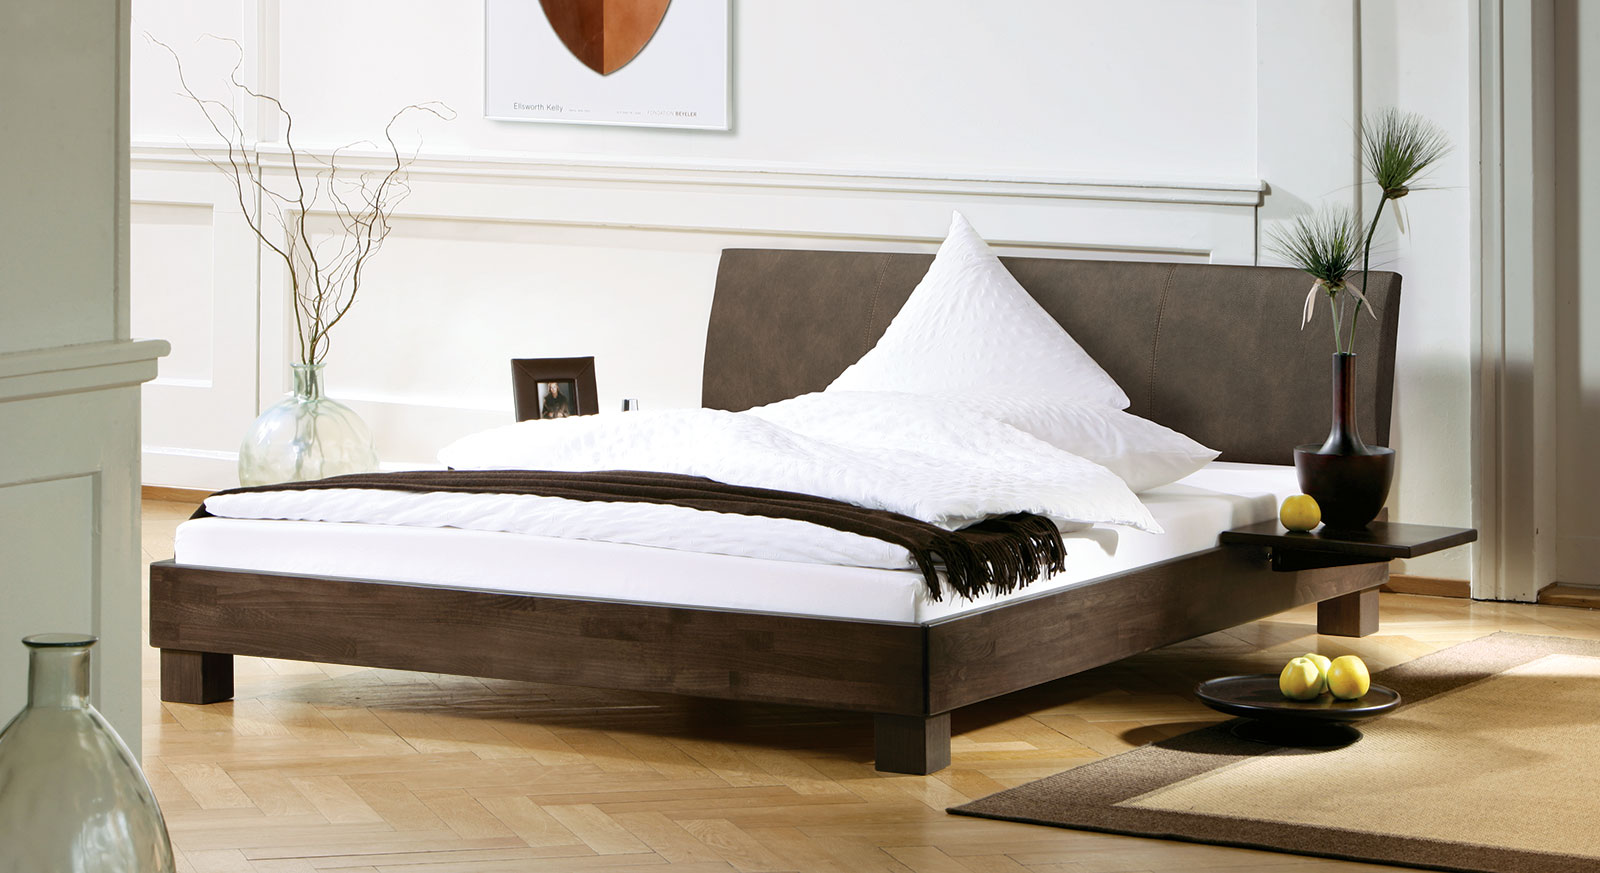 bett mit lehne aus luxus kunstleder g nstig kaufen marbella. Black Bedroom Furniture Sets. Home Design Ideas